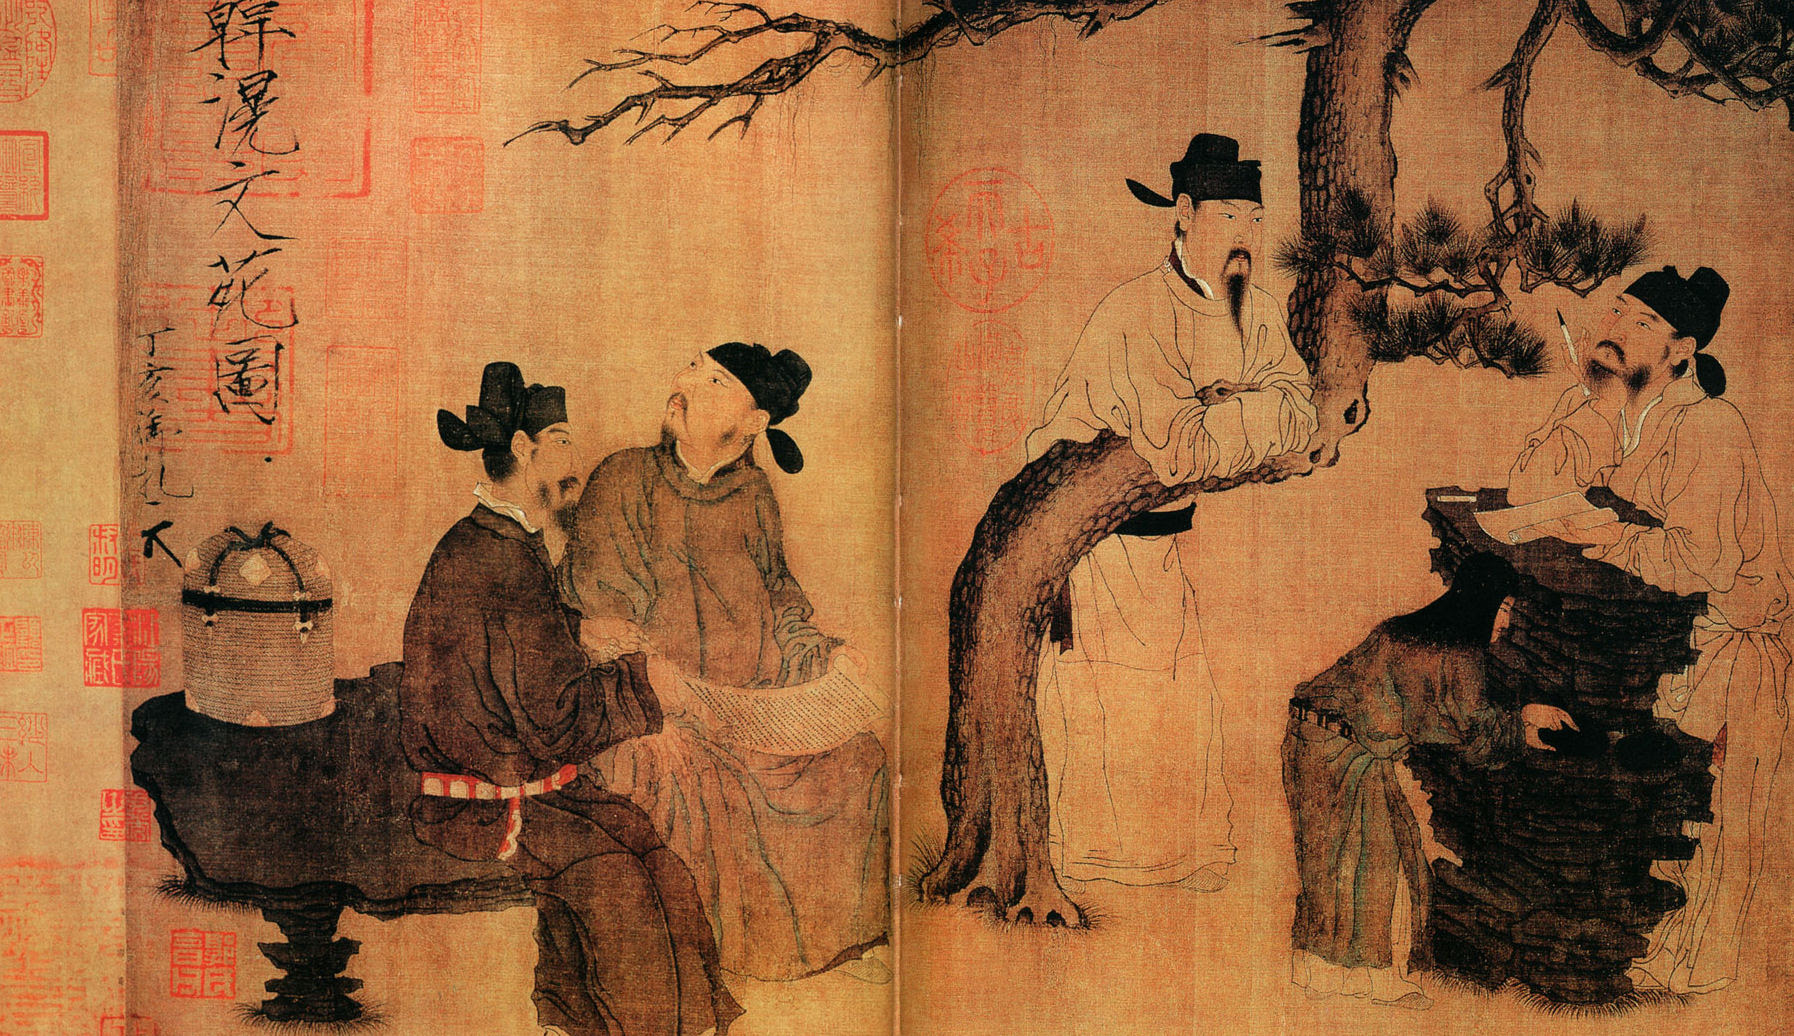 chinas history on confucianism The basic history of confucianism, as well as its basic tenets, will aid in understanding its impact in korea neo-confucianism in china and korea.